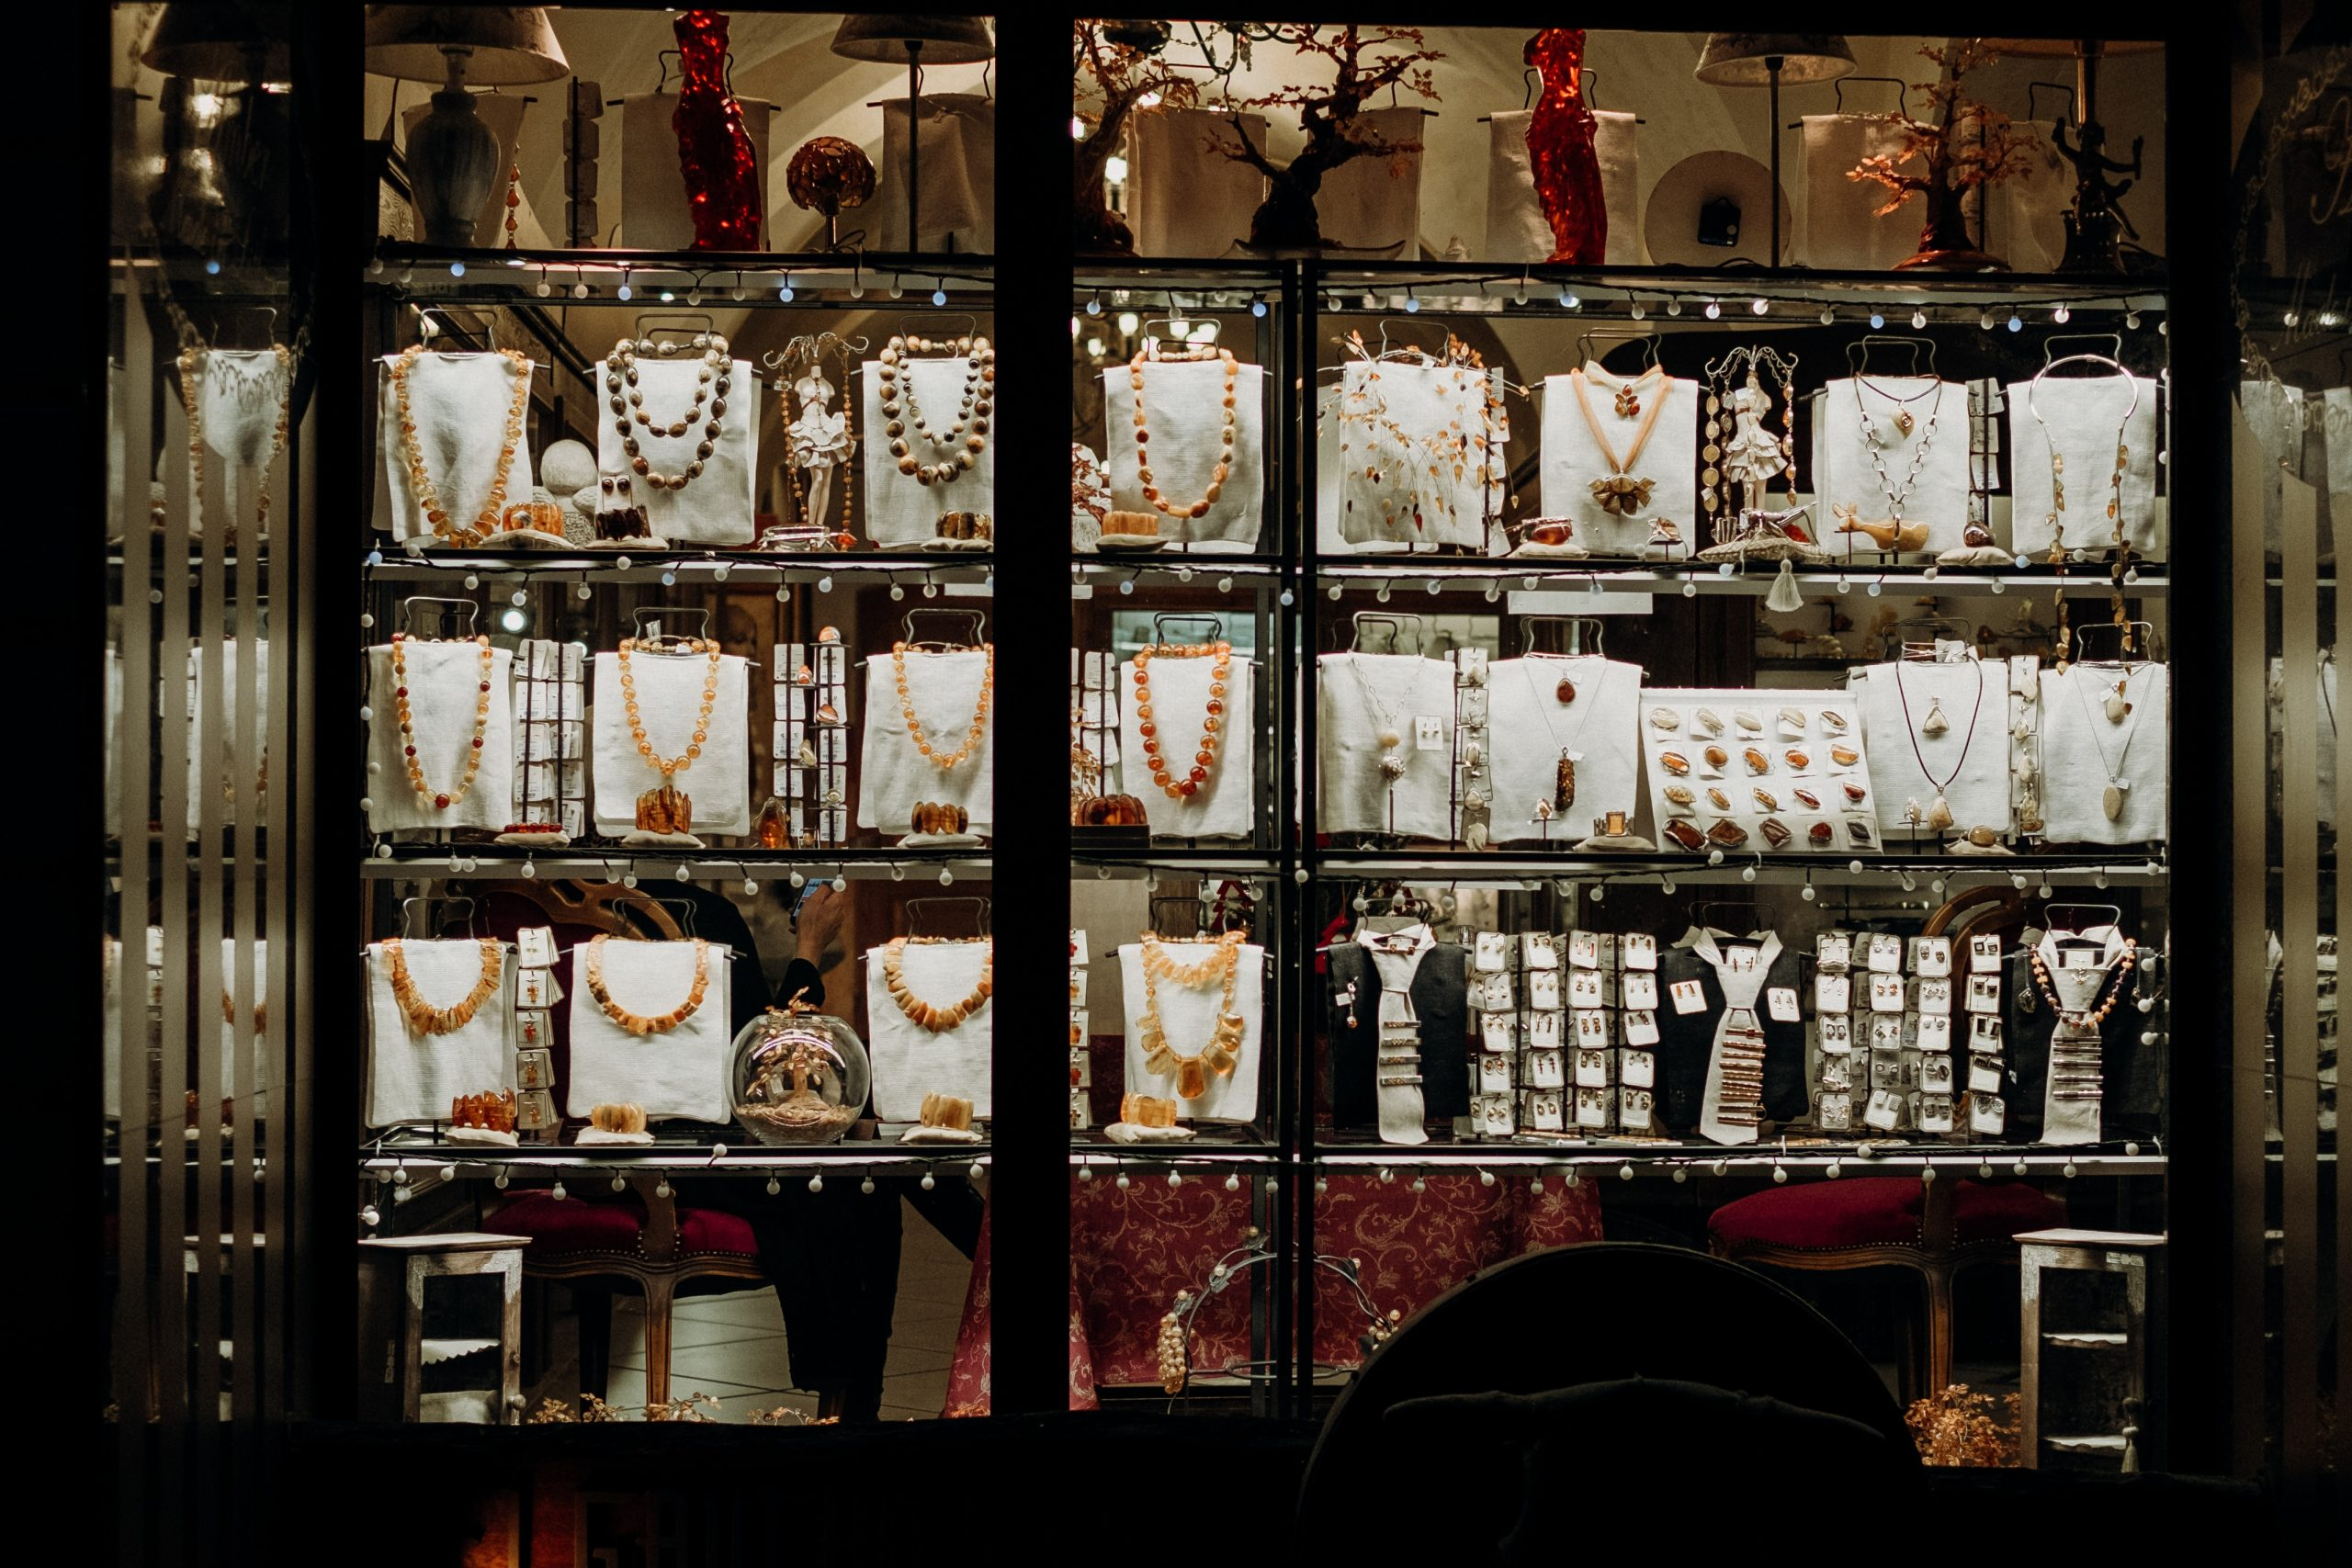 Advantages of using RFID for managing and tracking jewellery